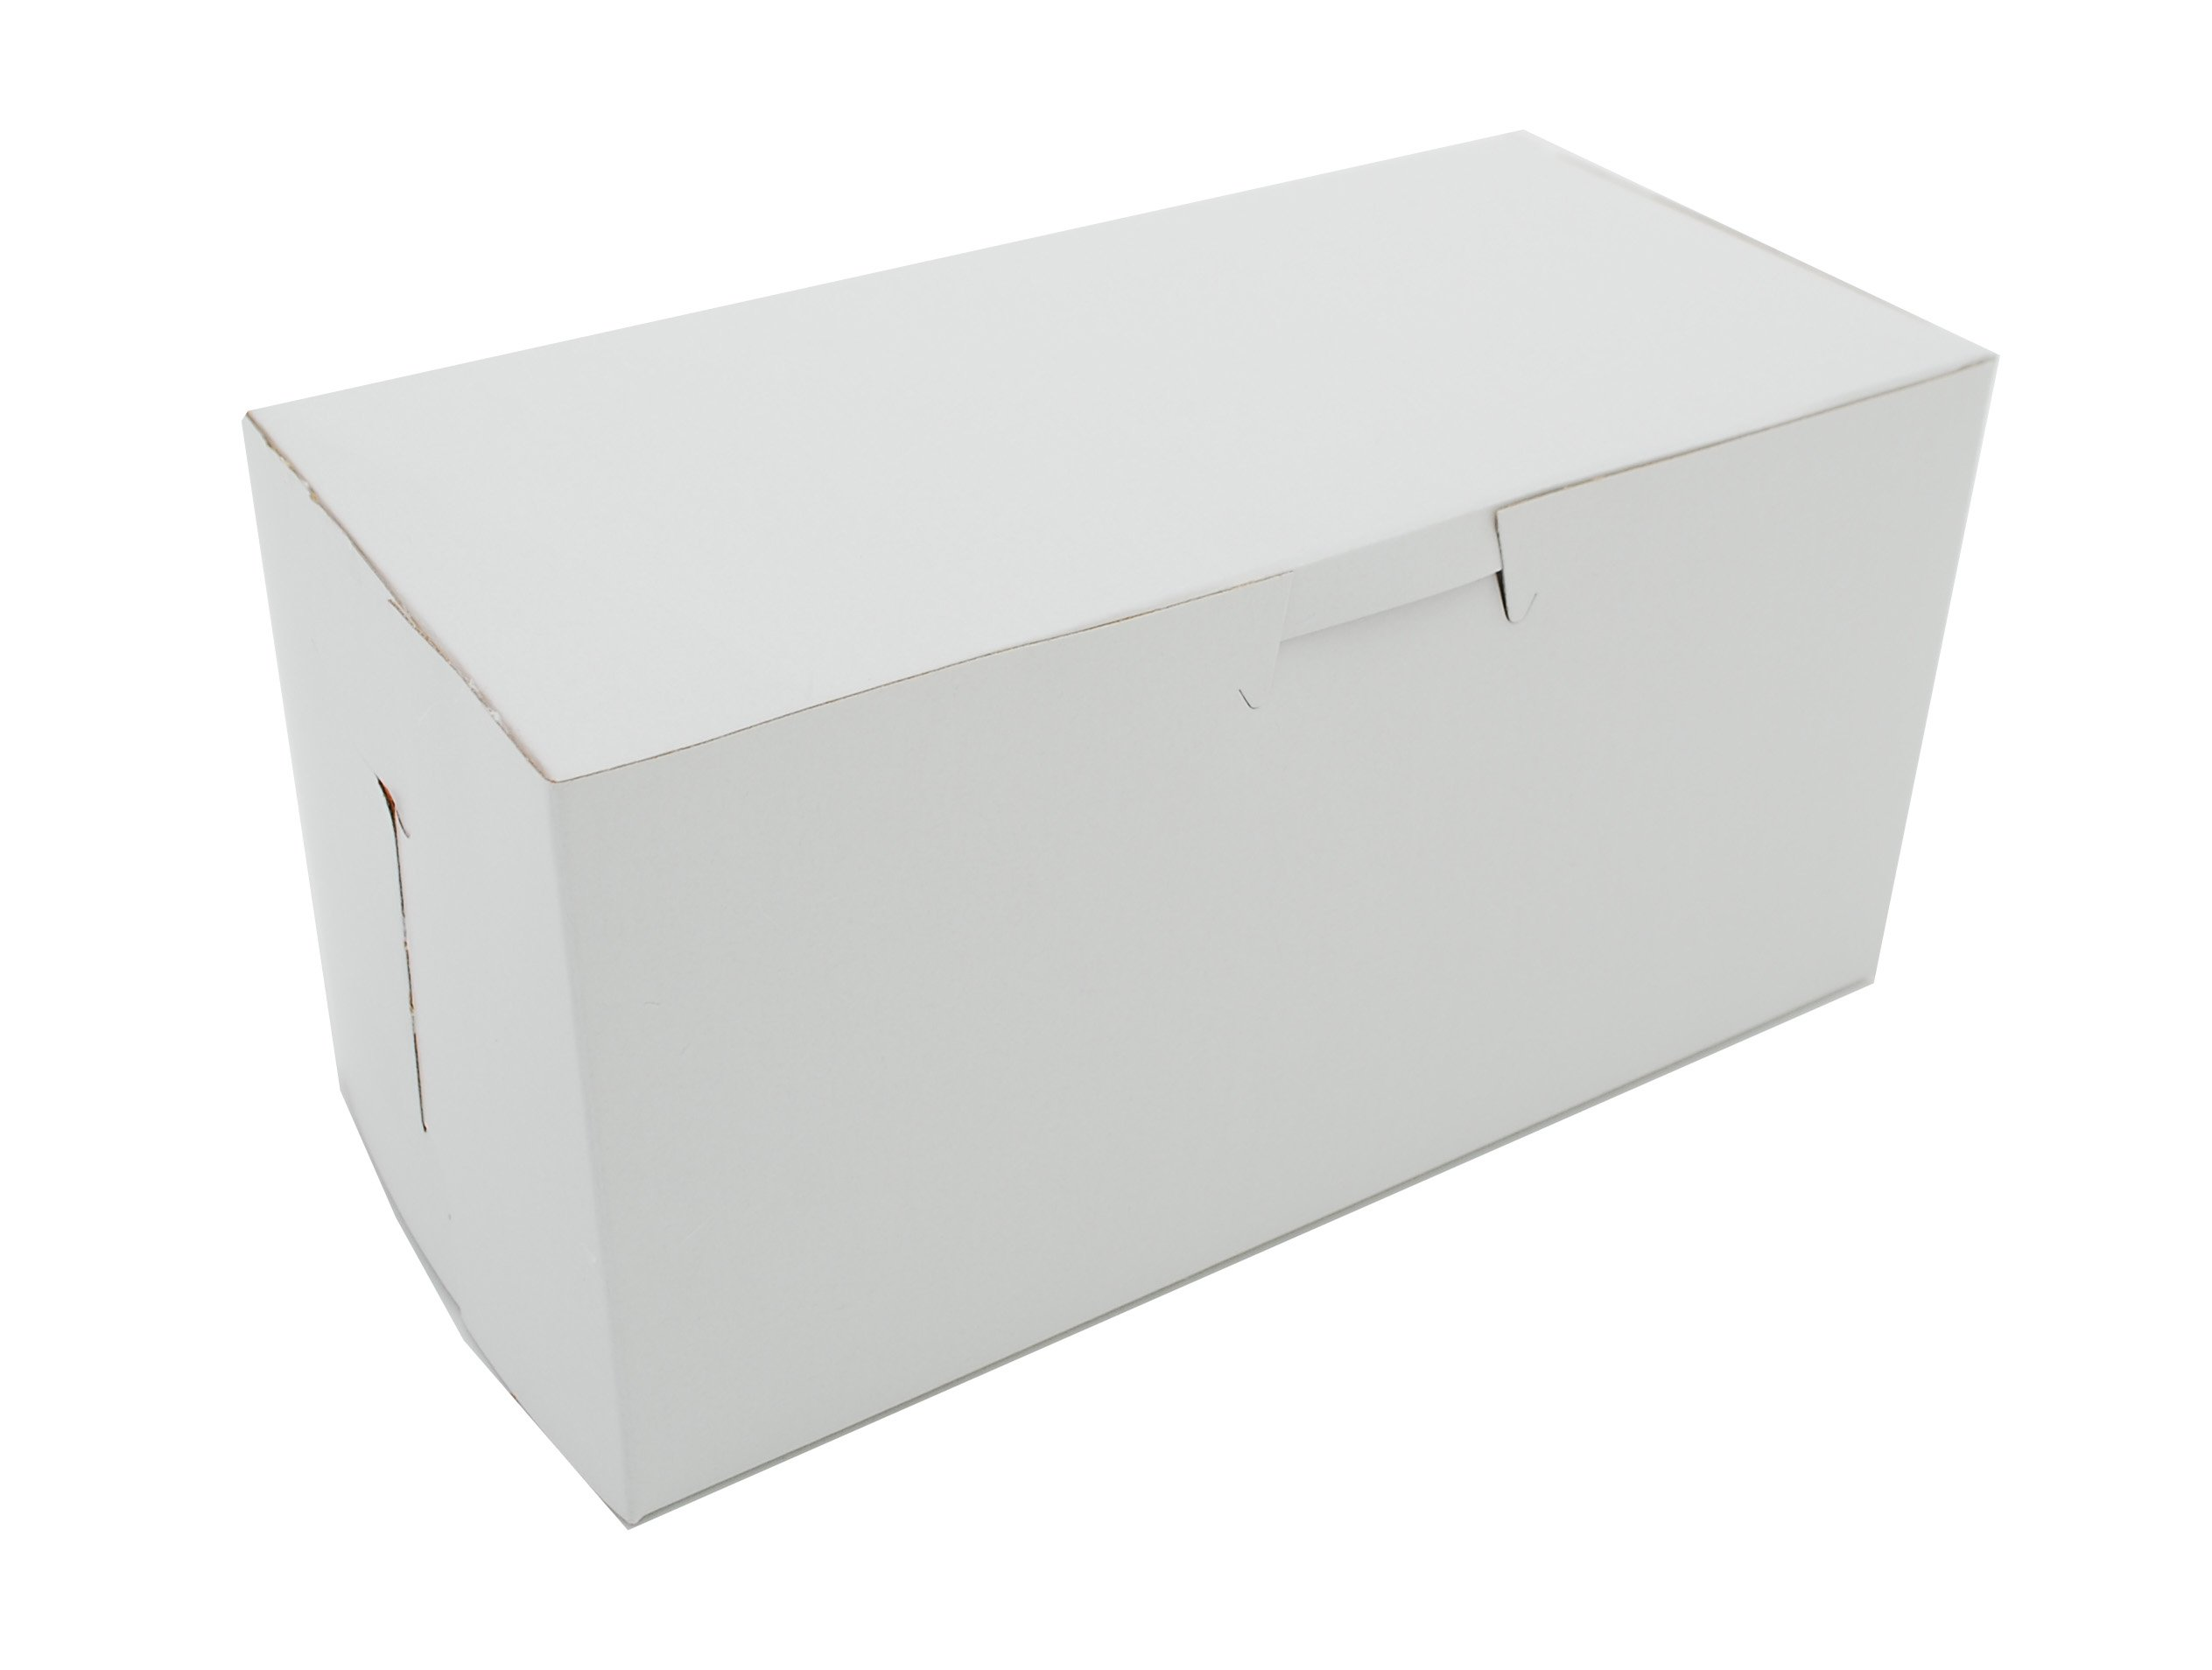 Southern Champion Tray 0924 Premium Clay Coated Kraft Paperboard White Non-Window Lock Corner Bakery Box, 8'' Length x 4'' Width x 4'' Height (Case of 250)